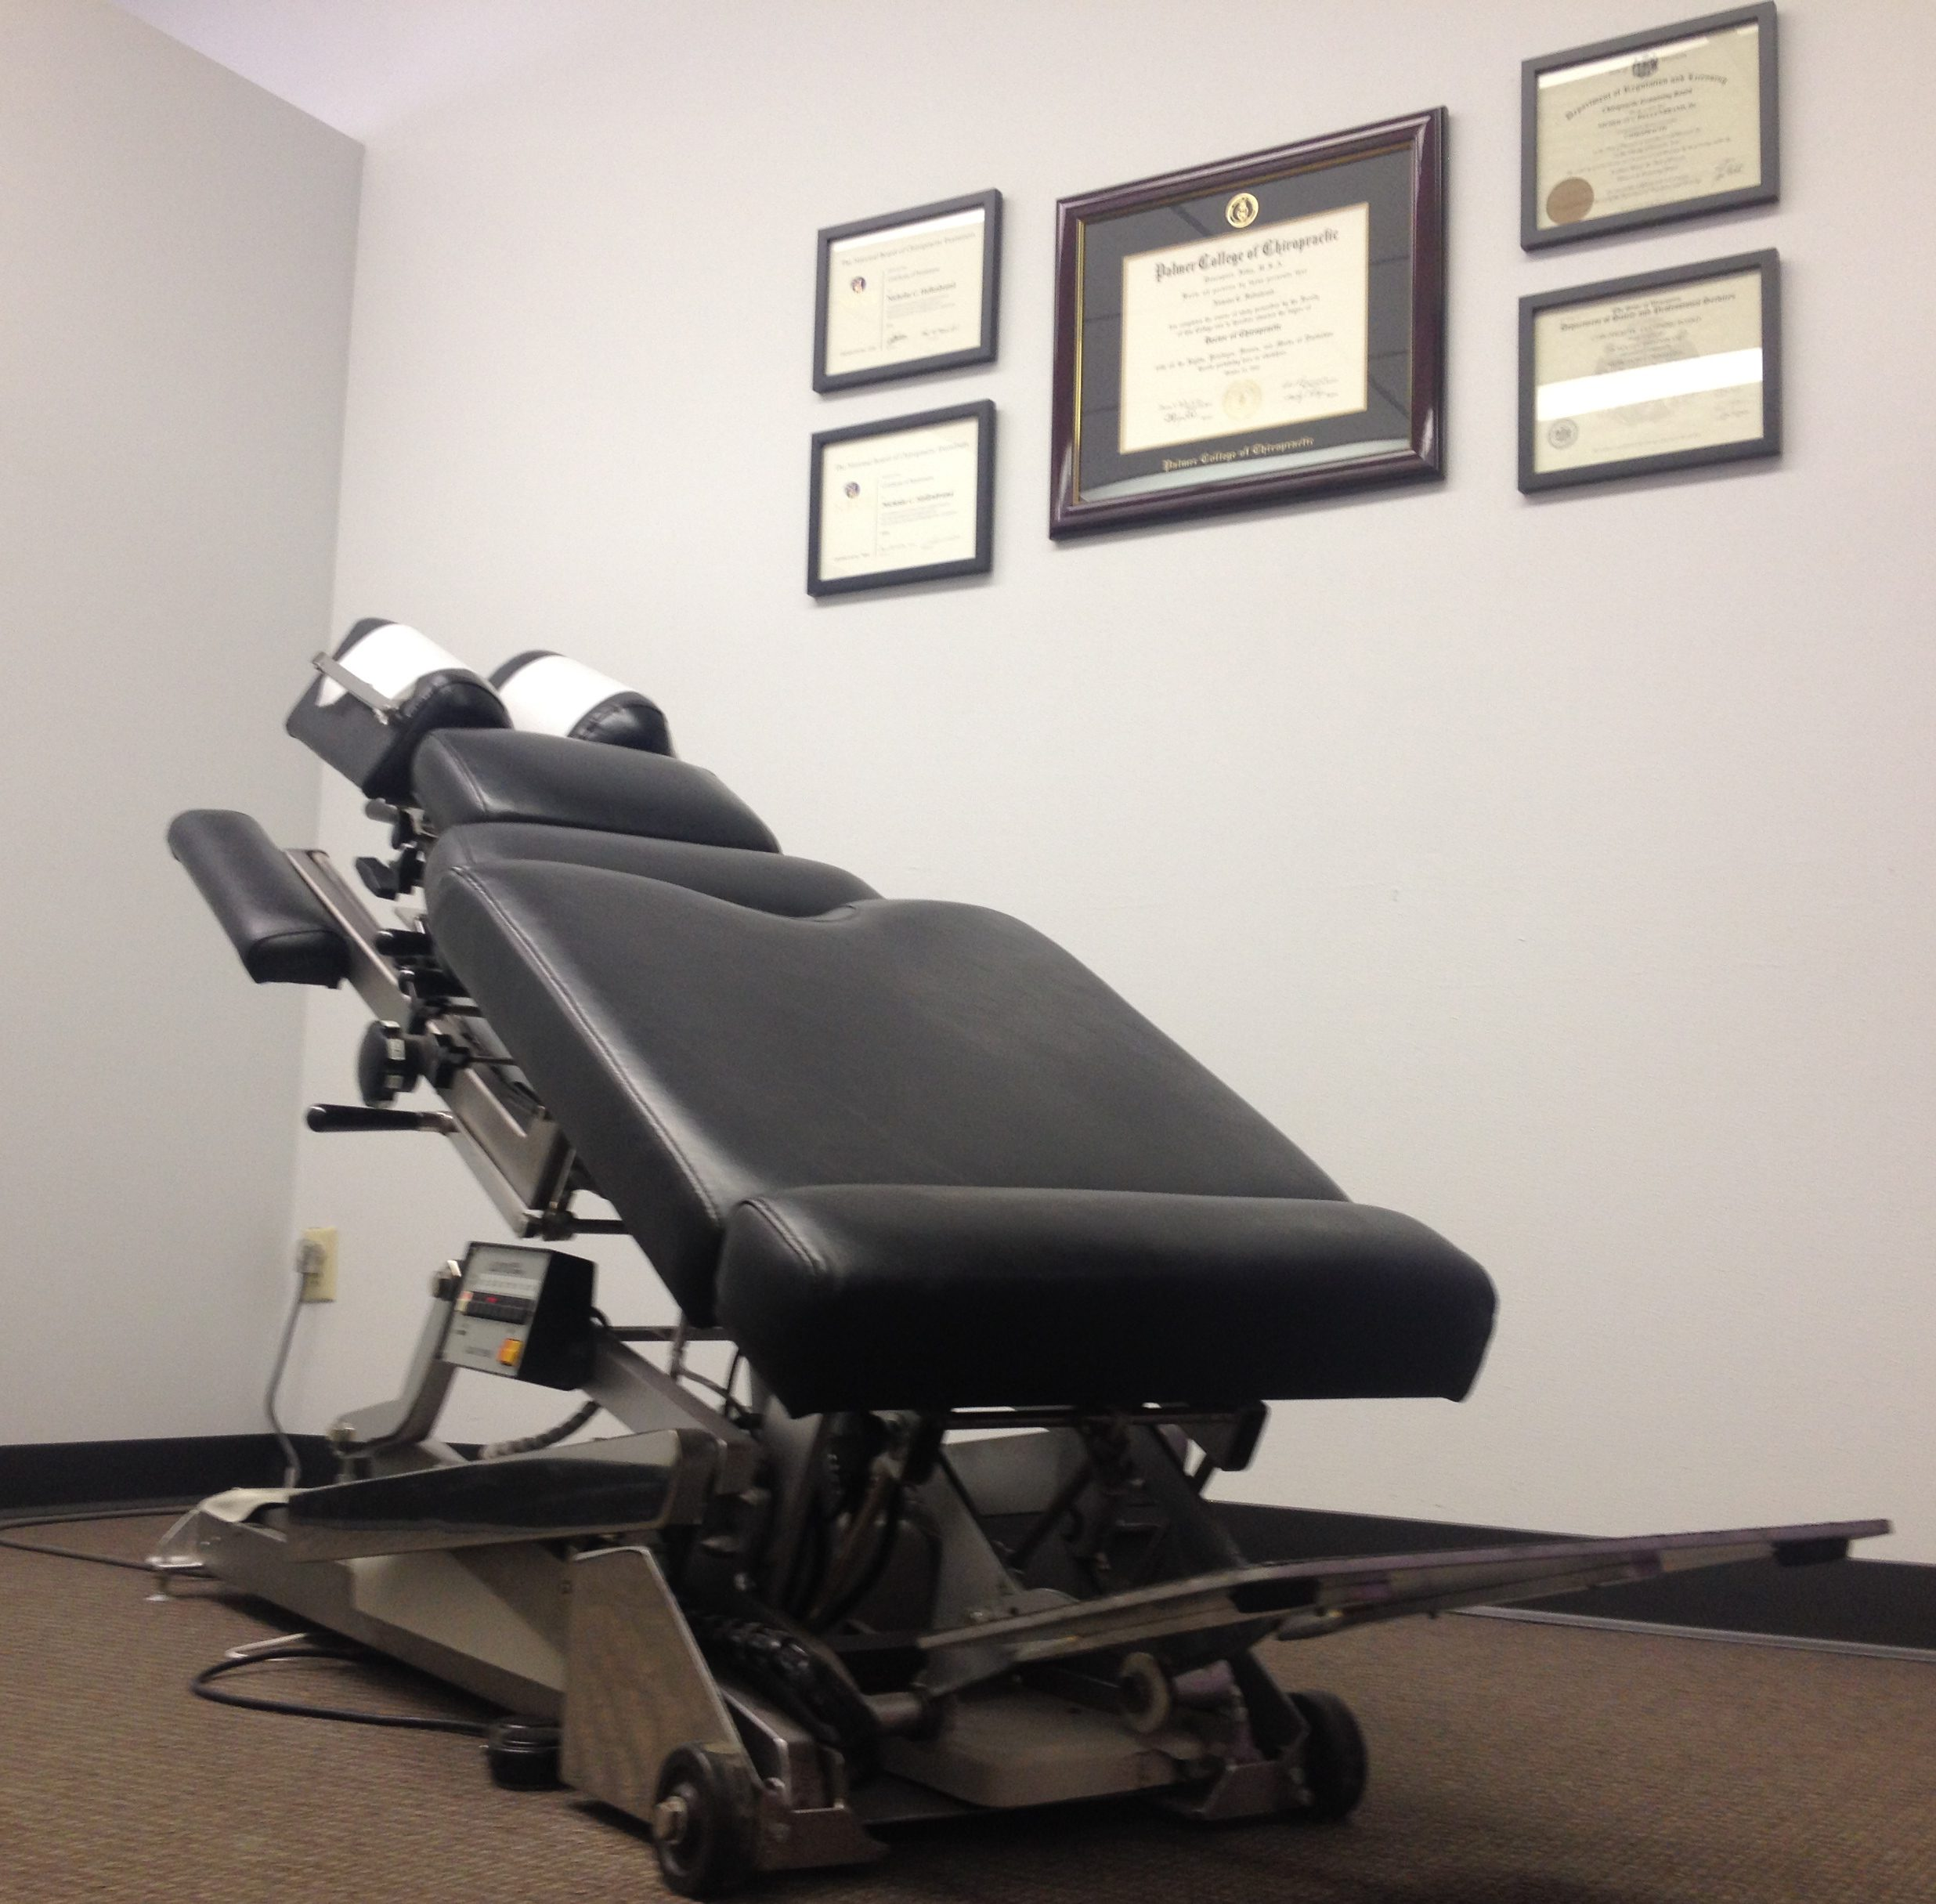 HRC, HR chiropractic, chiropractors, chiropractor, waunakee, 53597, health, wellness, health care, adjustment